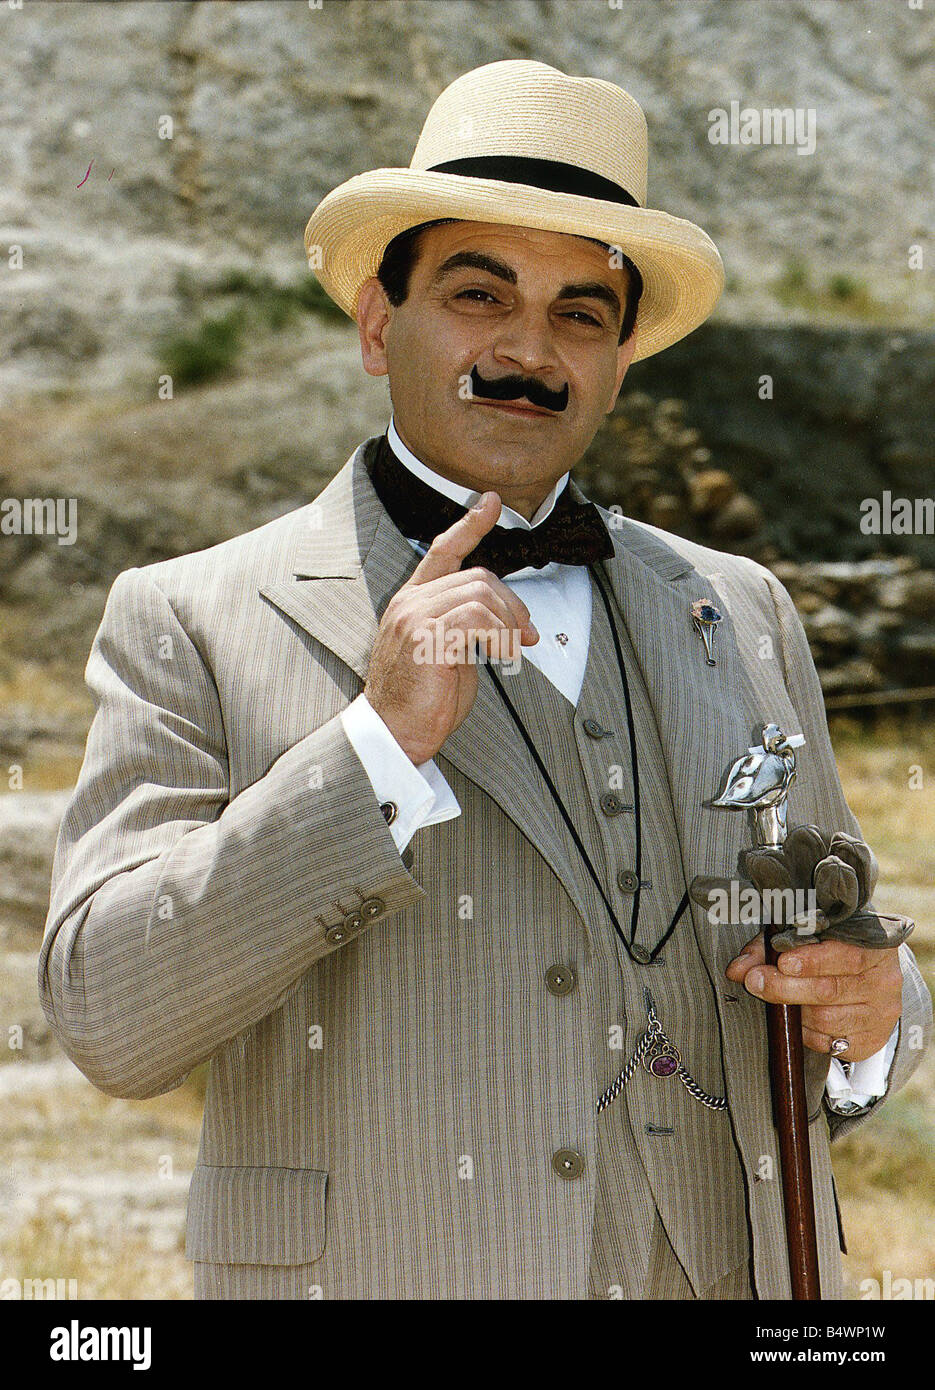 David Suchet plays Agatha Christies Poirot in the Television series Dbase - Stock Image